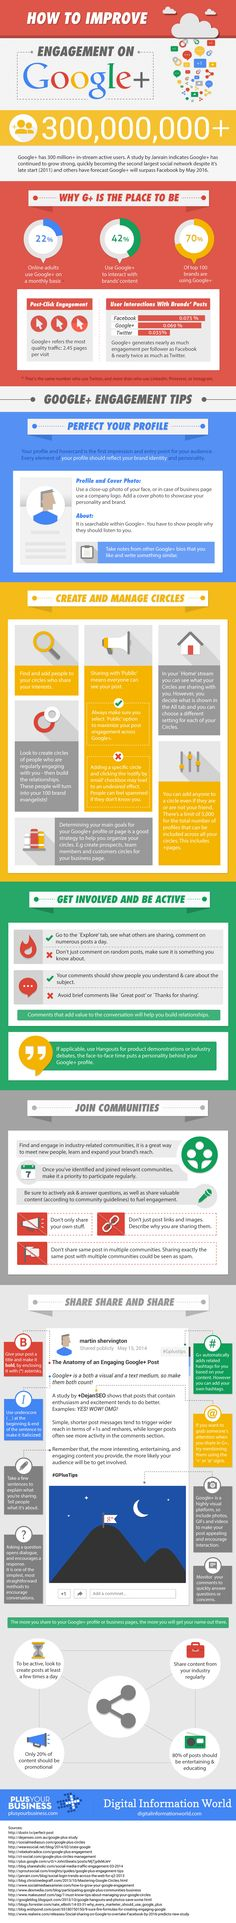 [huge infographic) Guide to Google+ Marketing